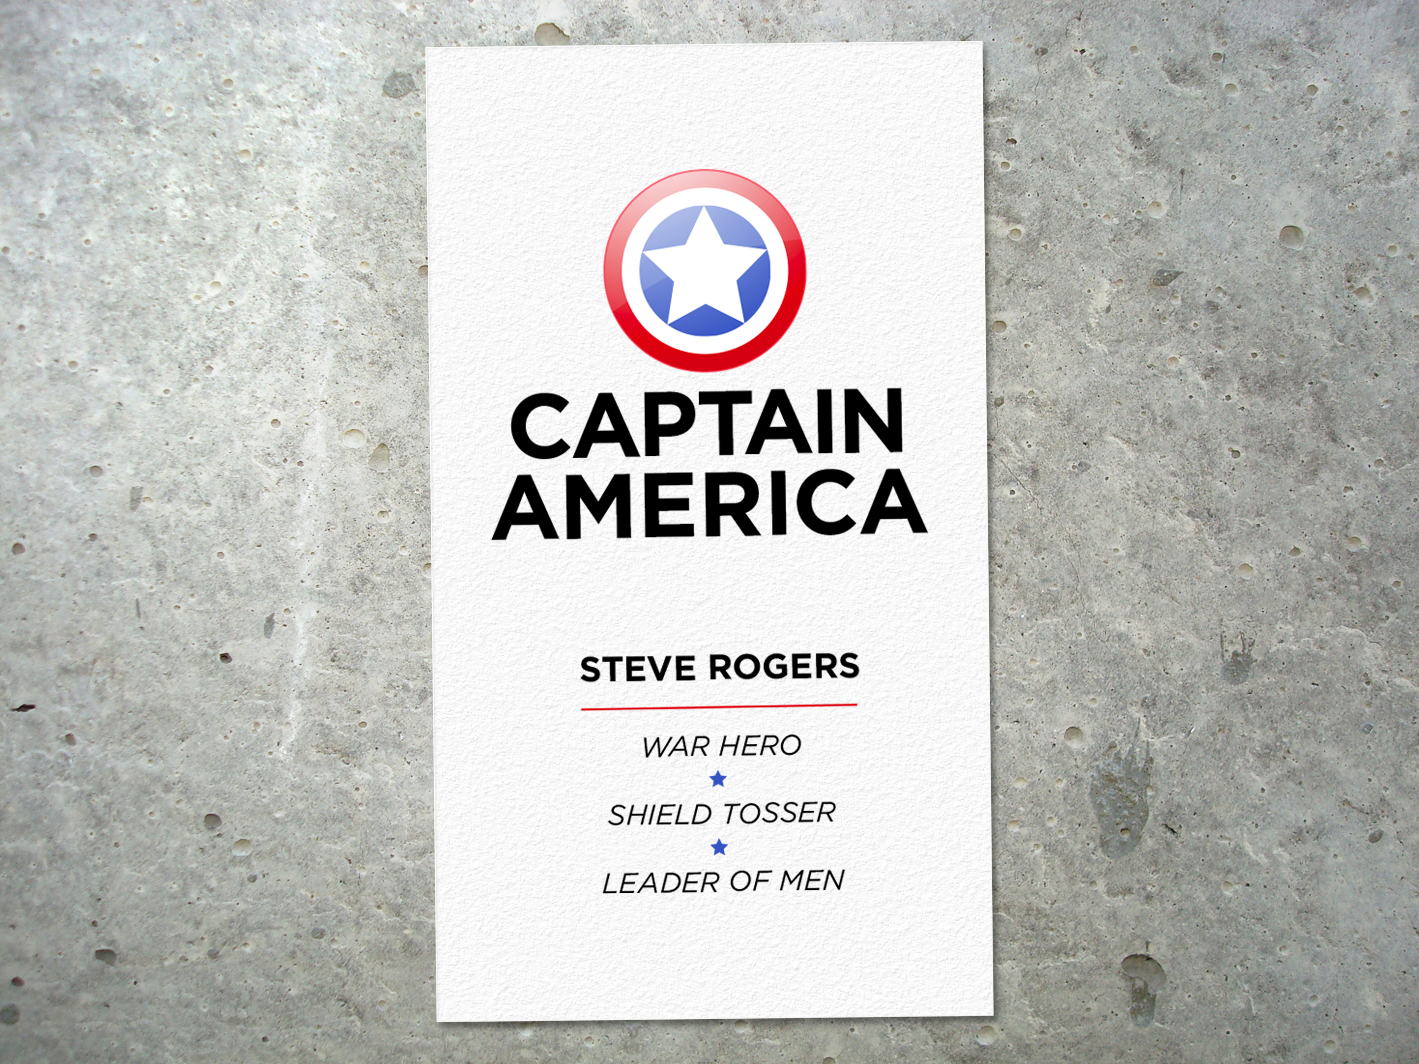 Captain america business card to go with your cosplay captain captain america business card to go with your cosplay magicingreecefo Choice Image